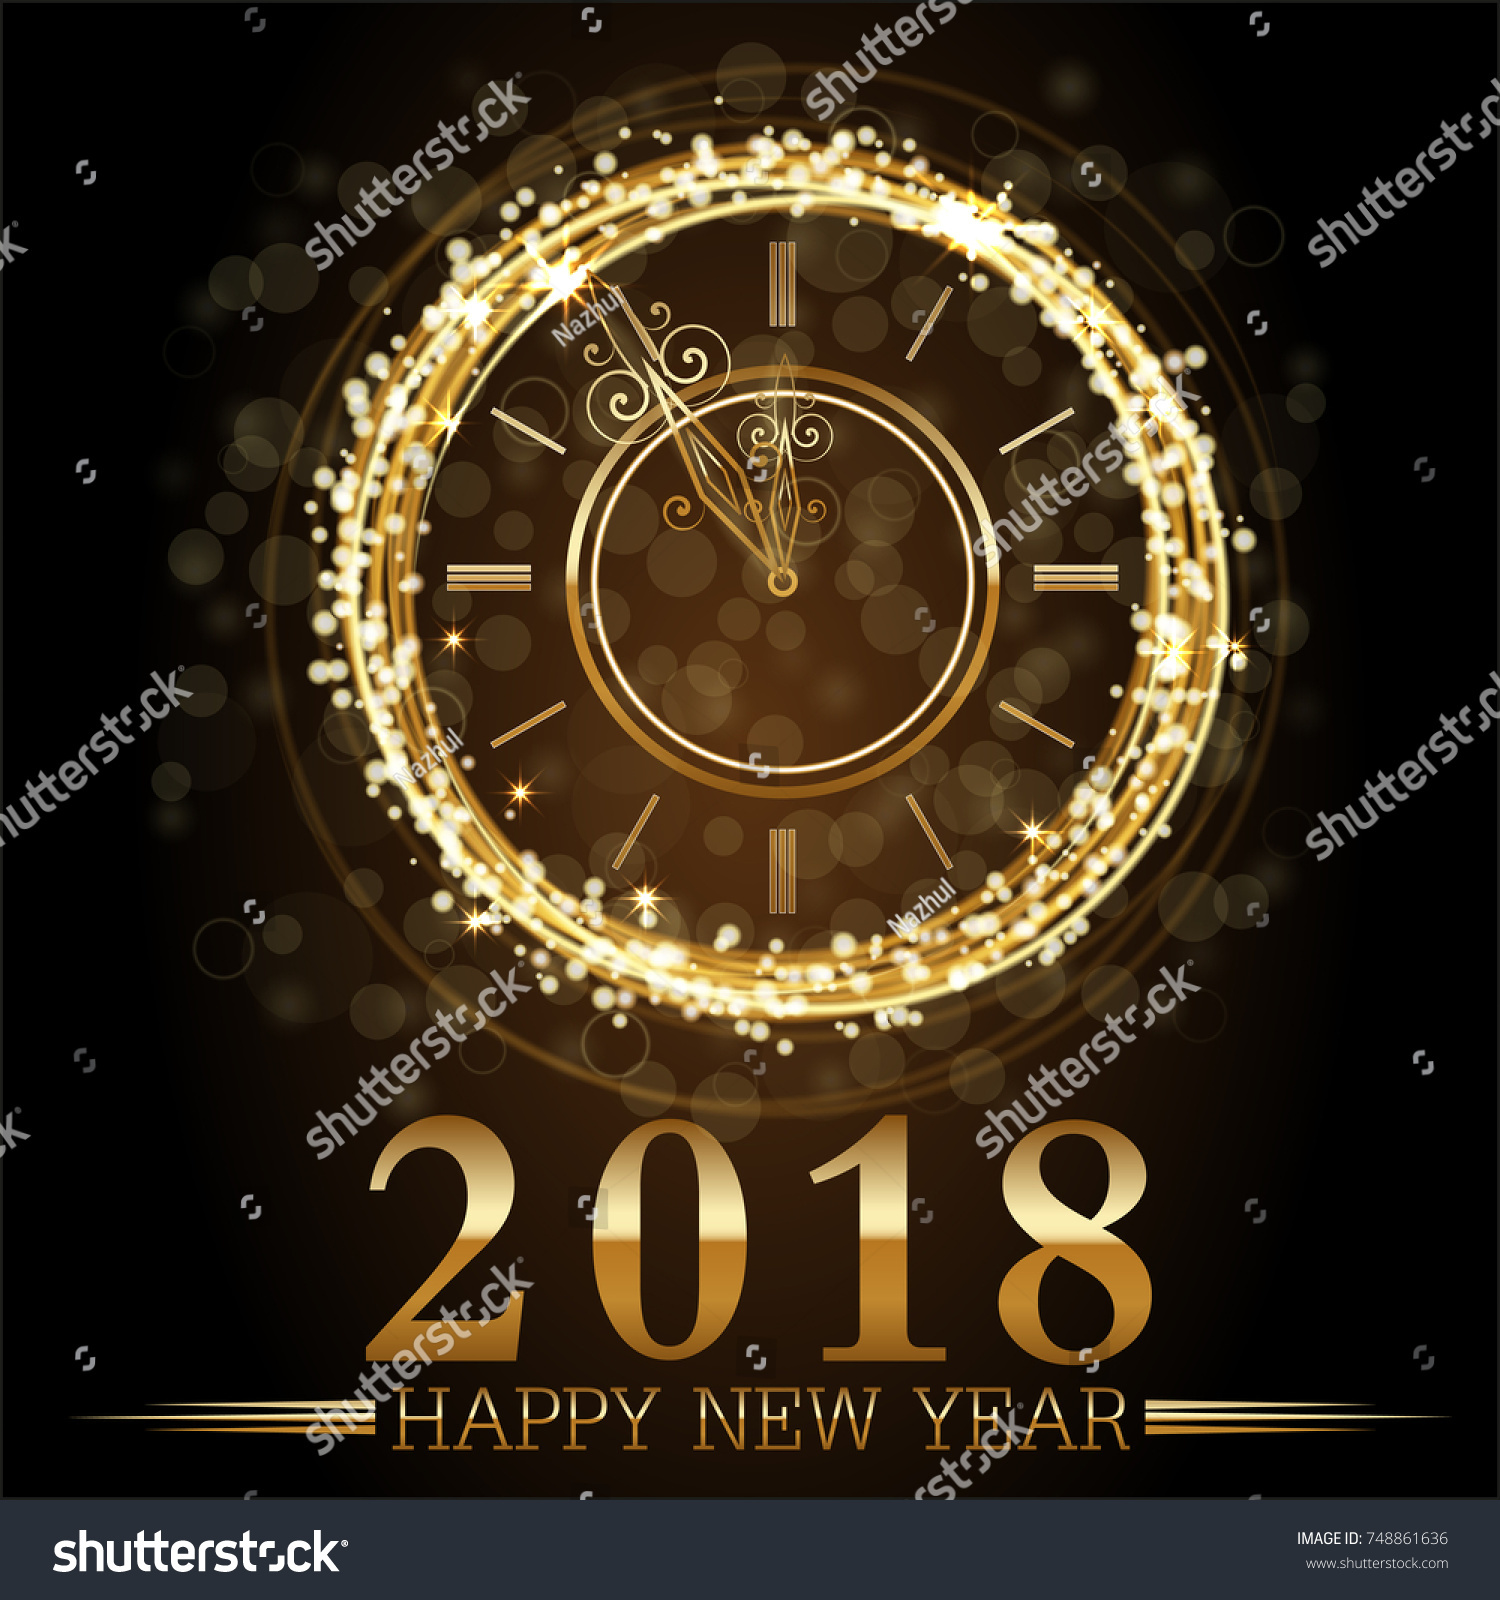 vector 2018 happy new year background with gold clock